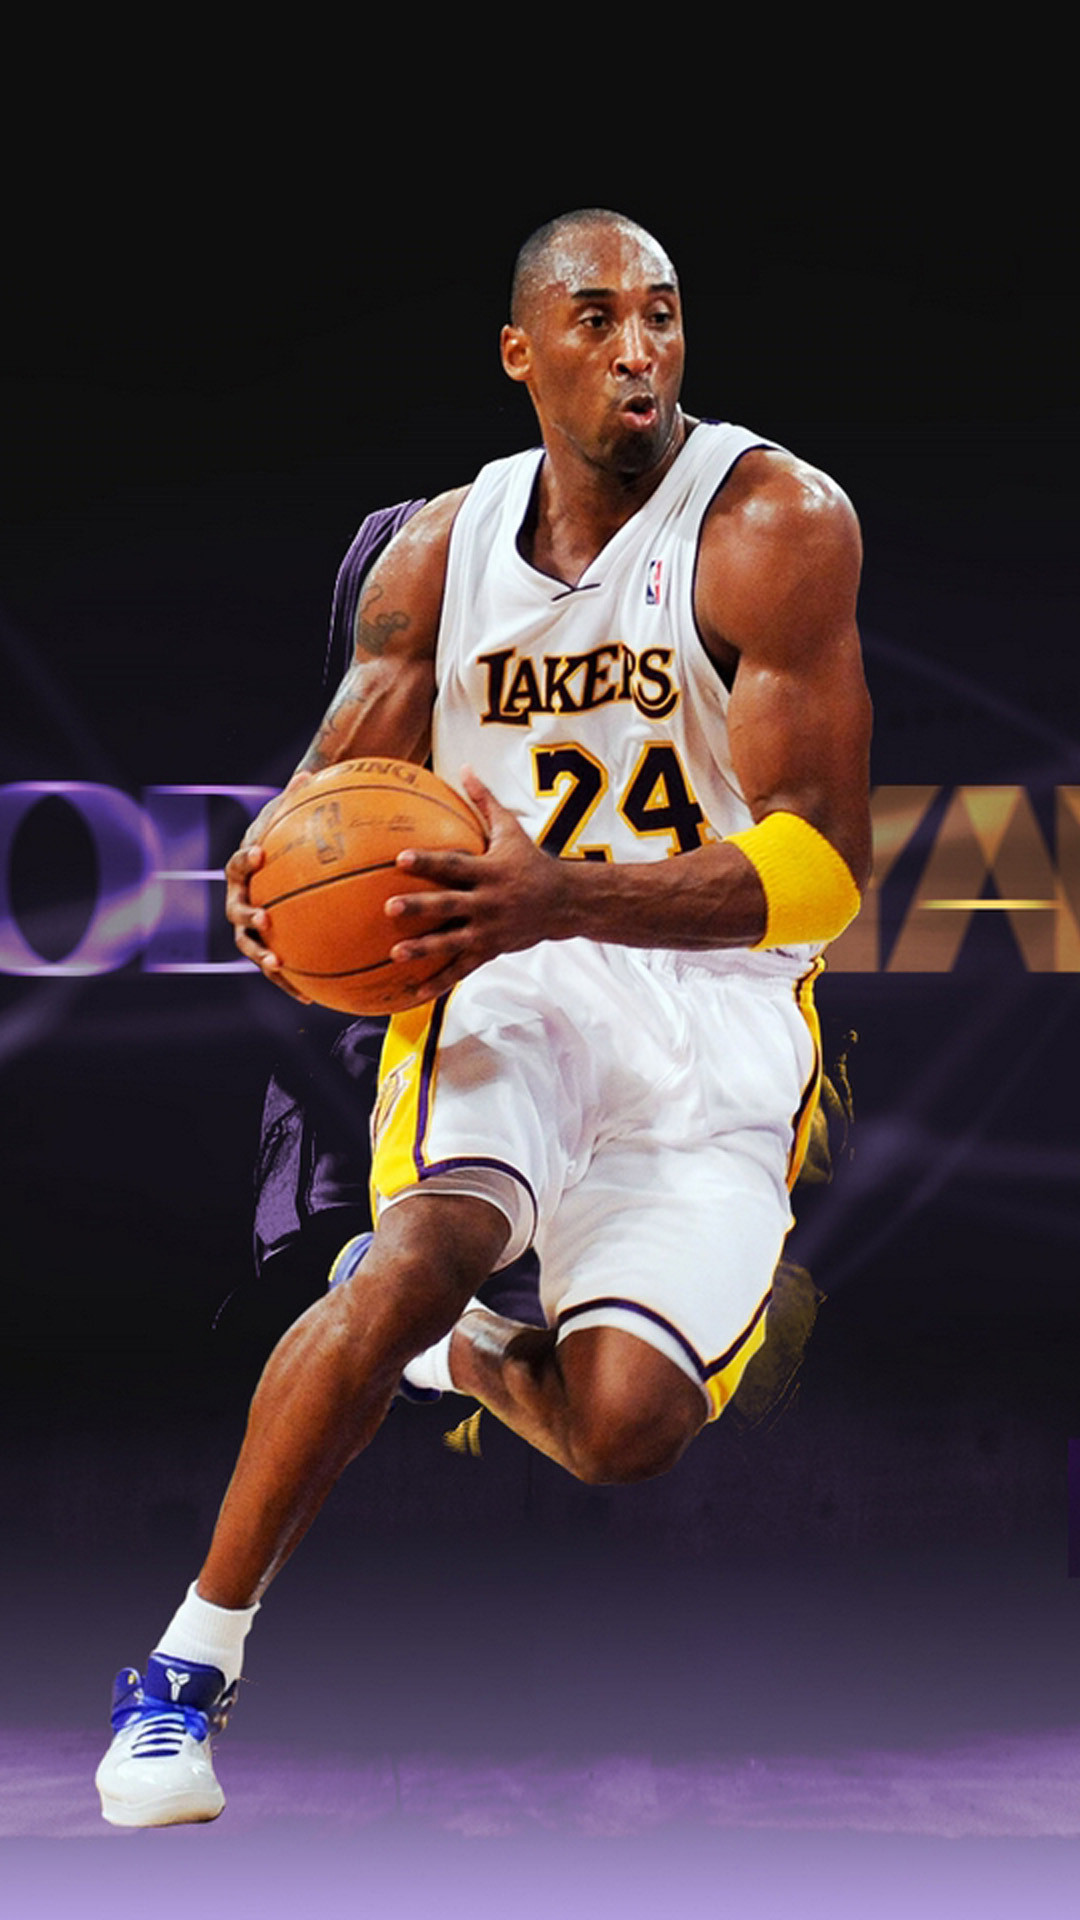 Kobe Bryant 02 Wallpapers for Samsung Galaxy S5